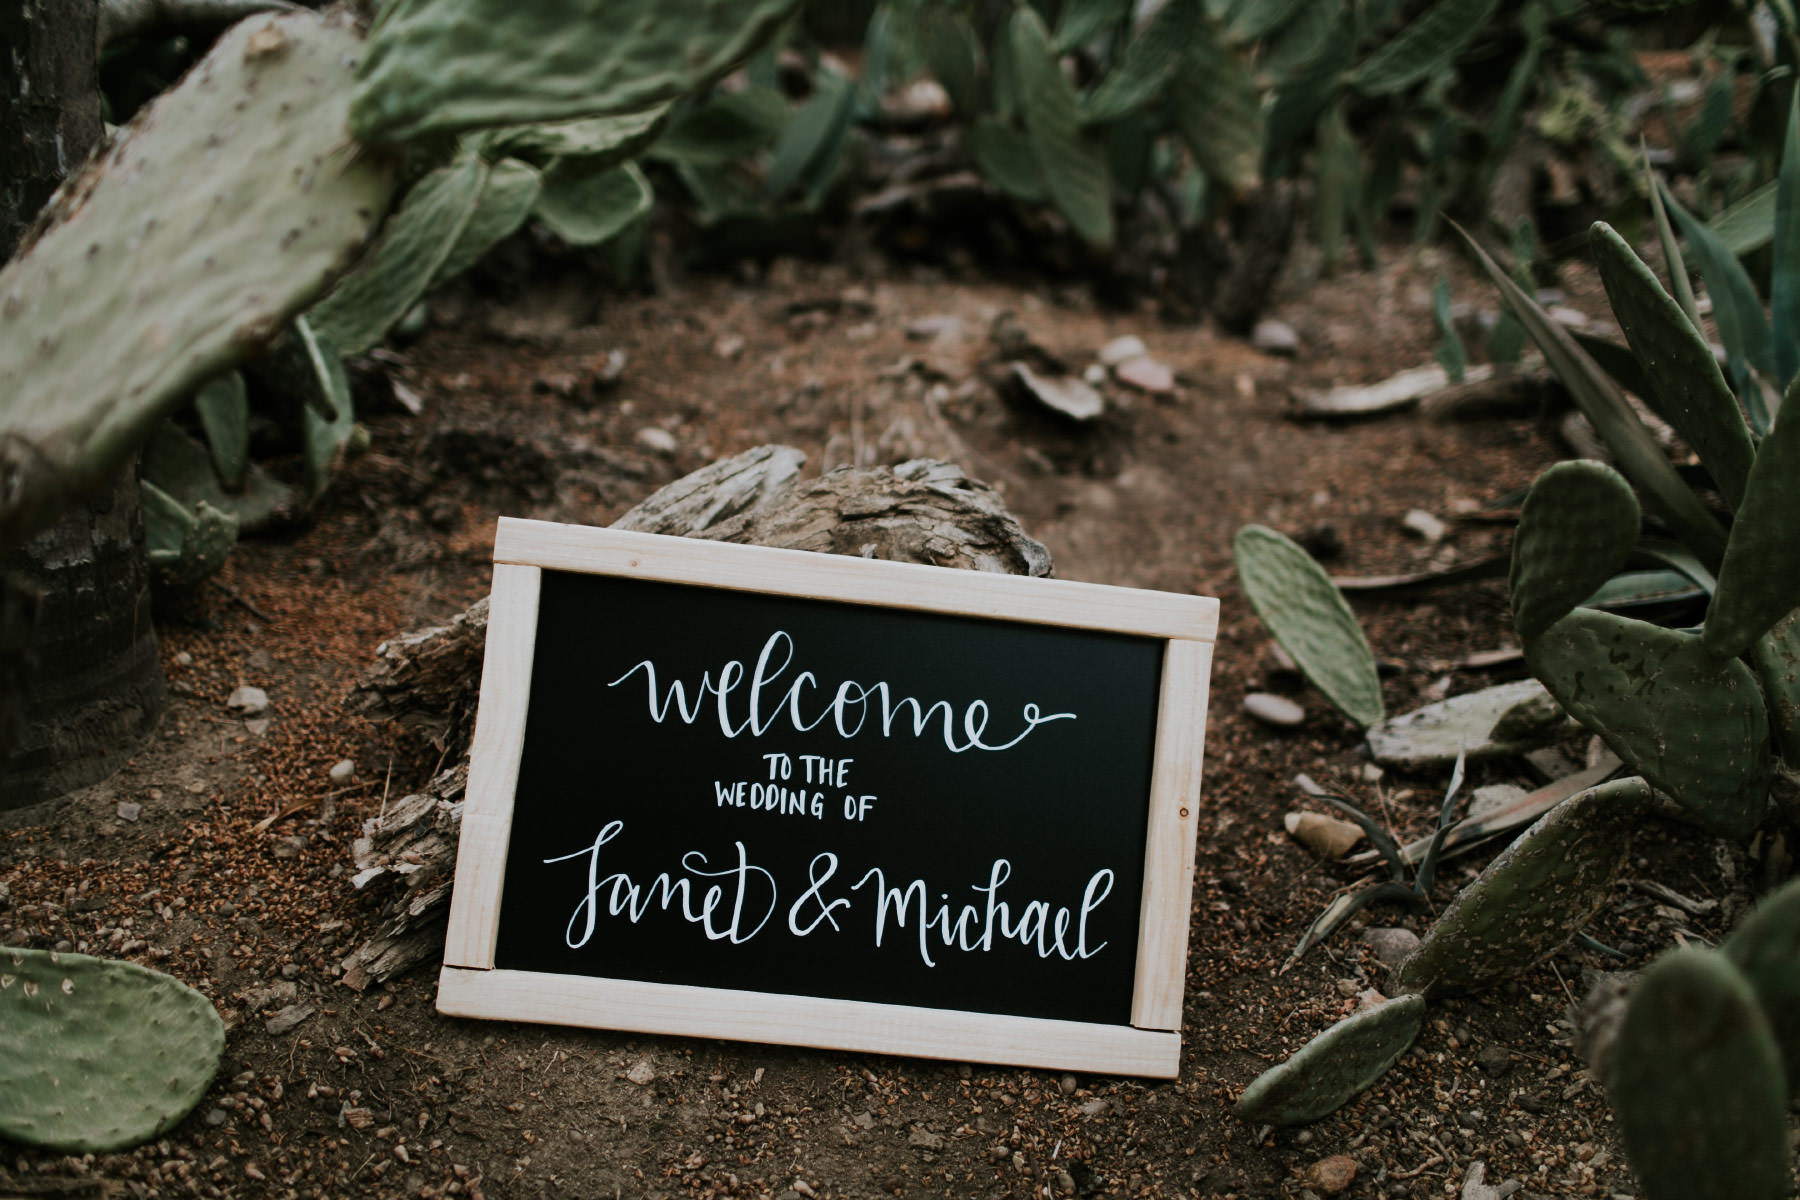 Welcome to the wedding of Janet and Michael